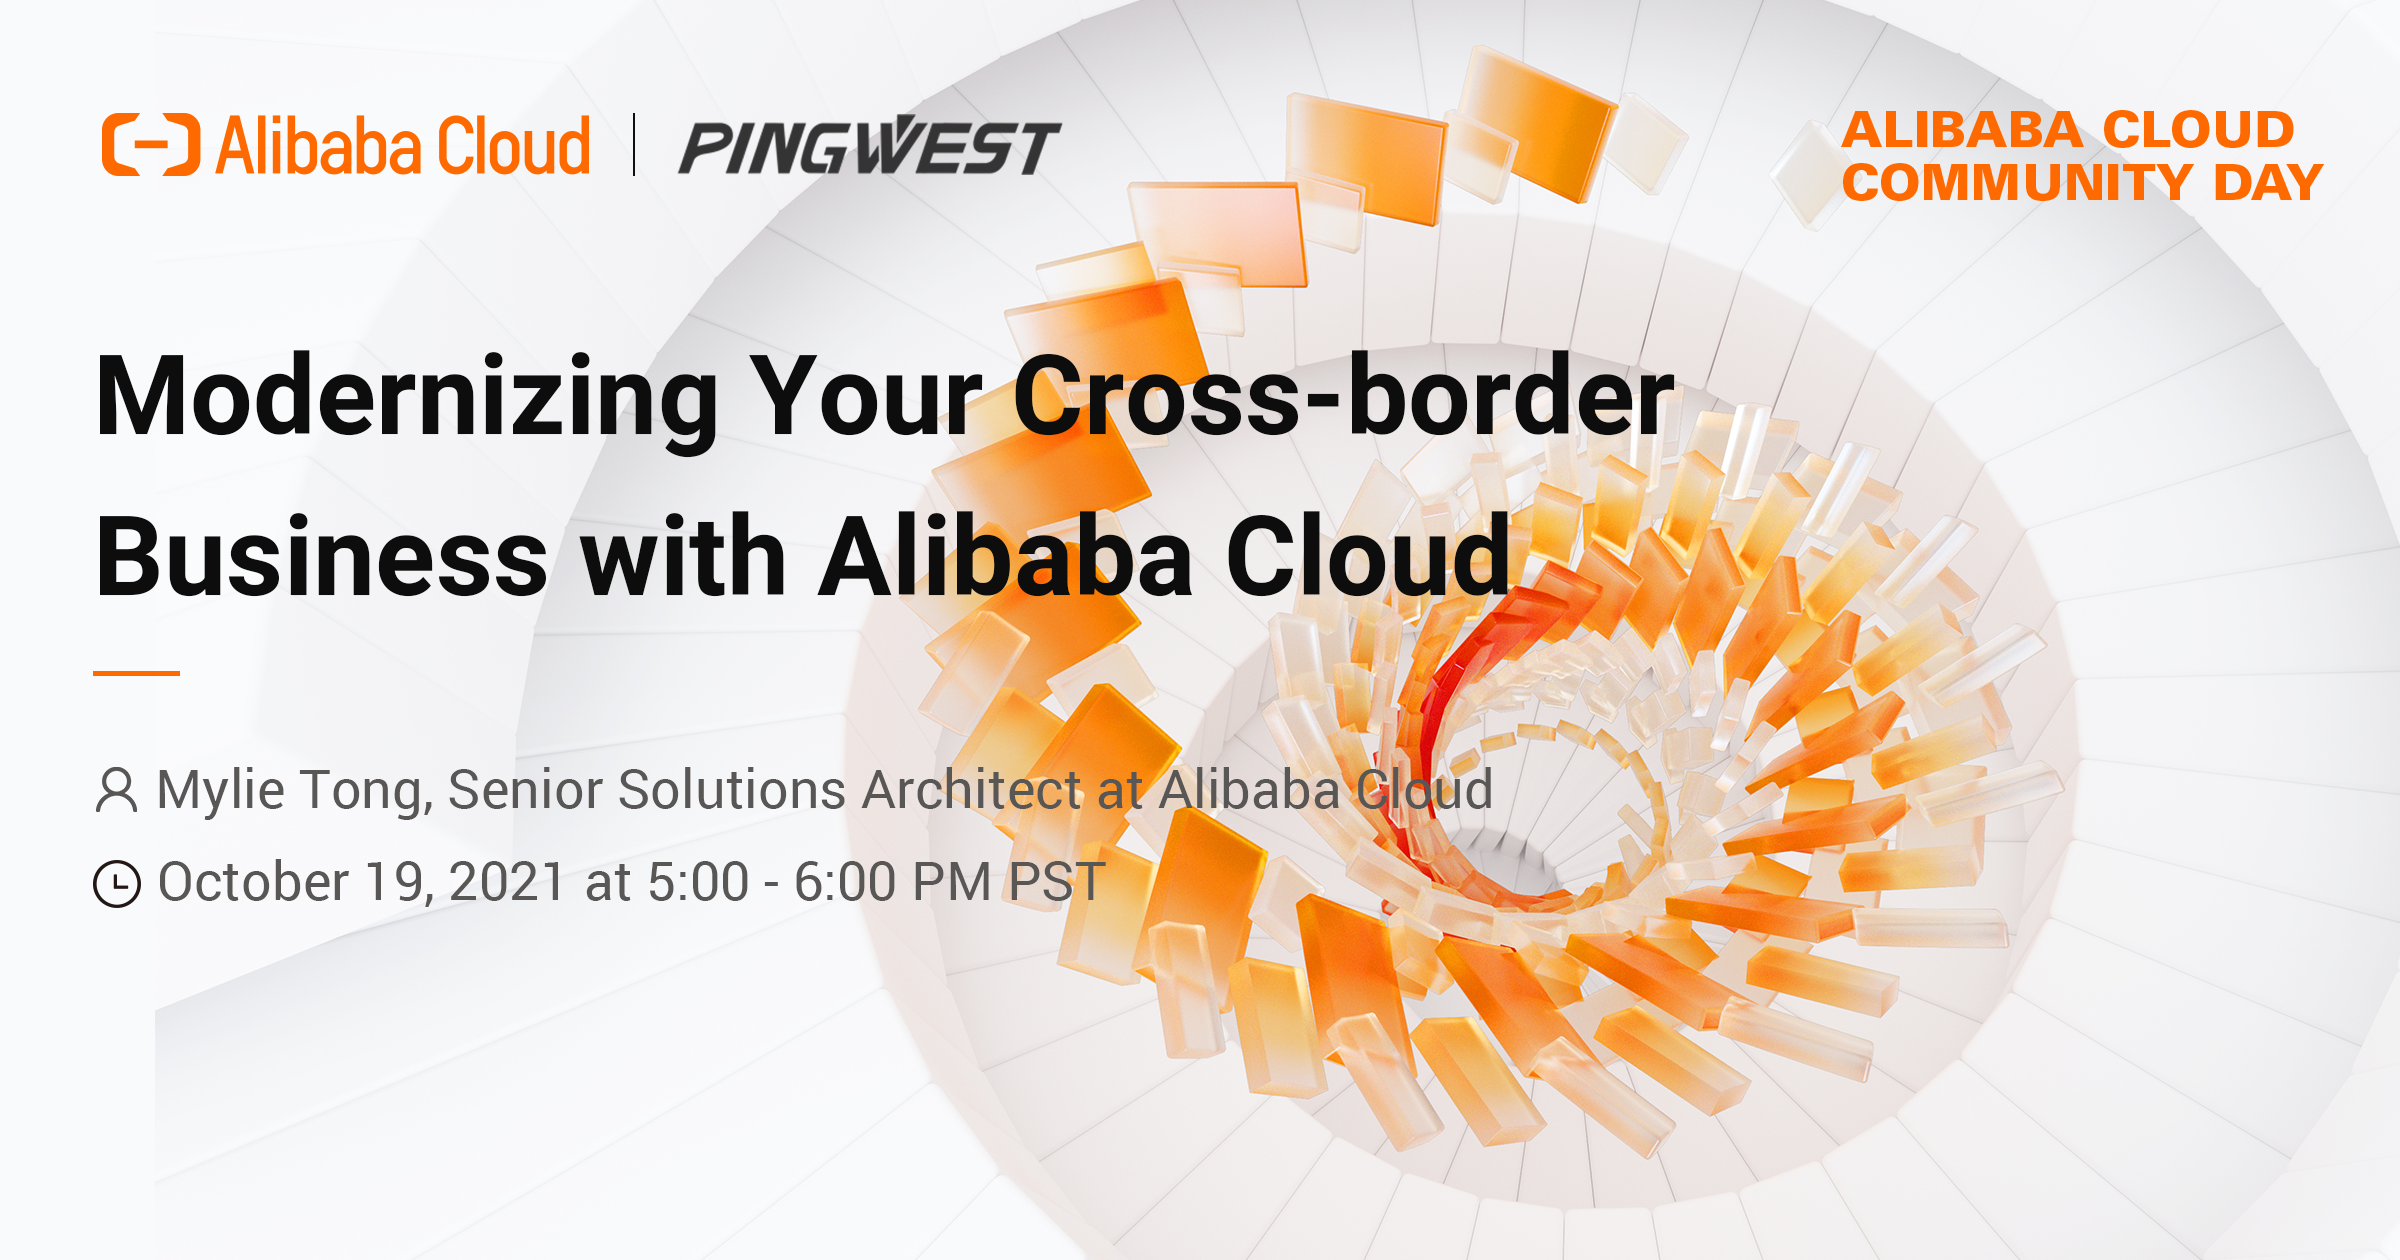 Alibaba Cloud Community Day: Modernizing your cross-border business with Alibaba Cloud